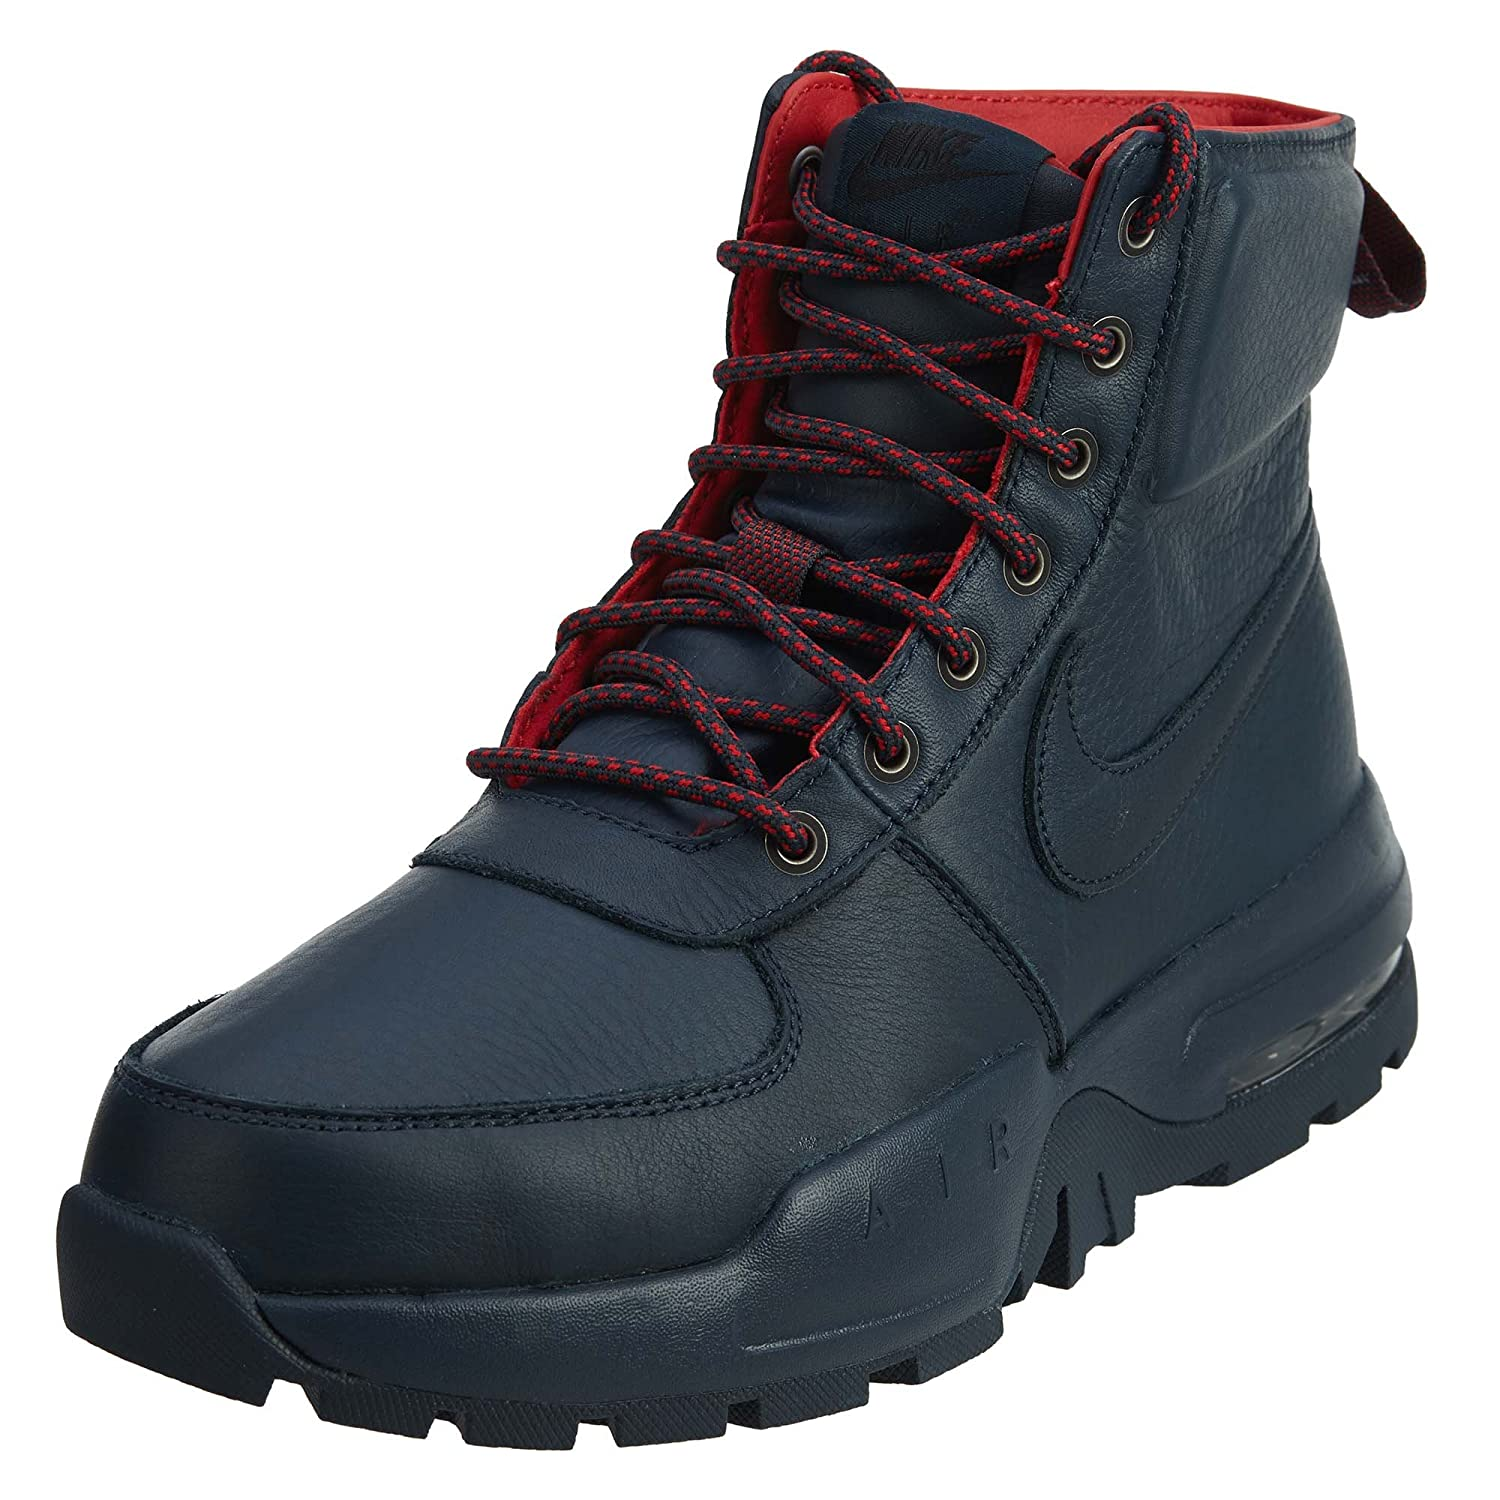 NIKE Armory Herren Air Goaterra 2.0 Stiefel Armory NIKE Navy Armory Navy-University ROT 8 465a0a